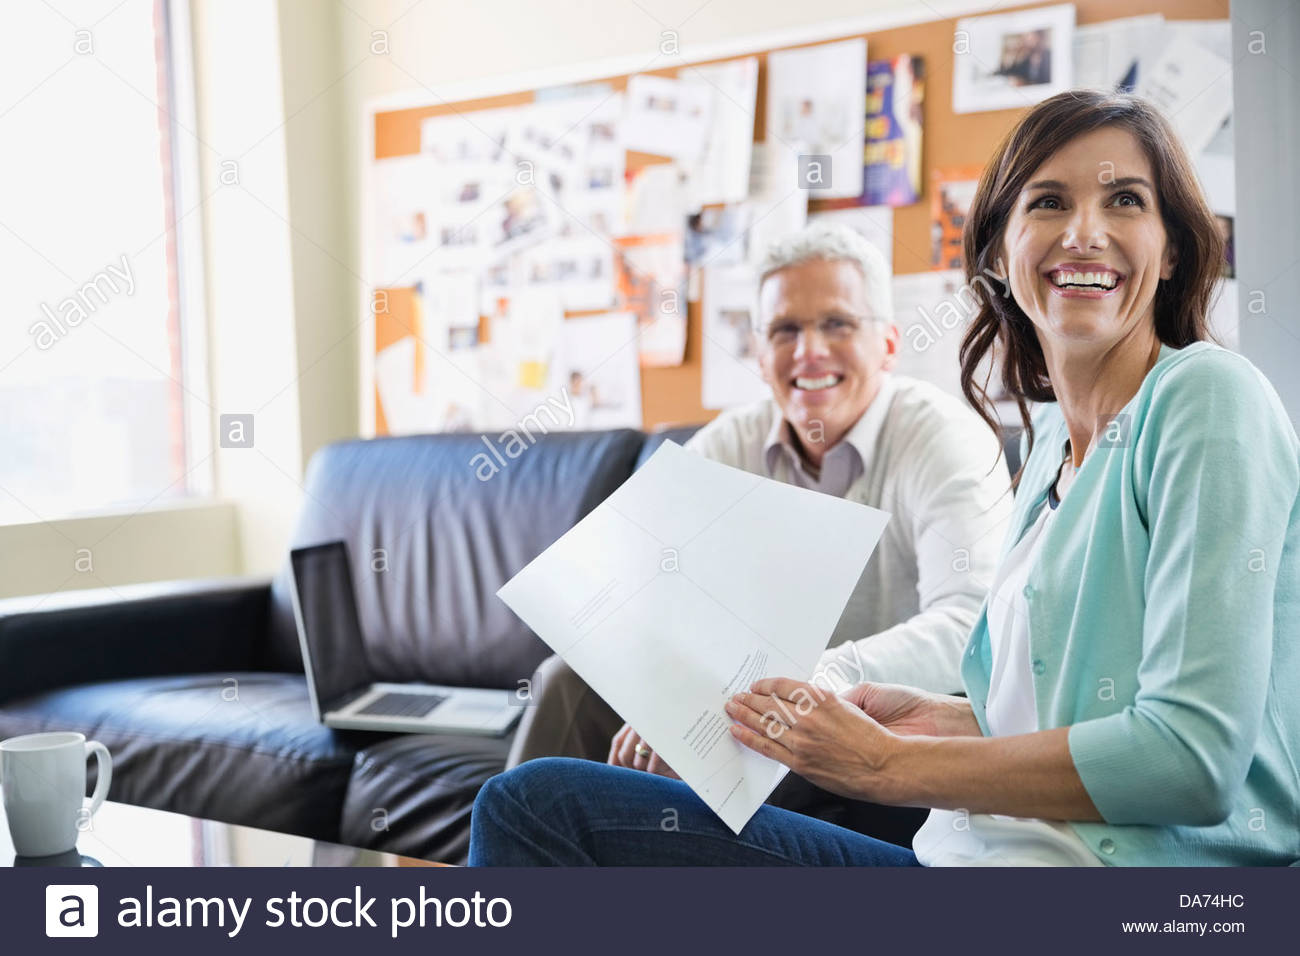 Business people working on project at table in office - Stock Image